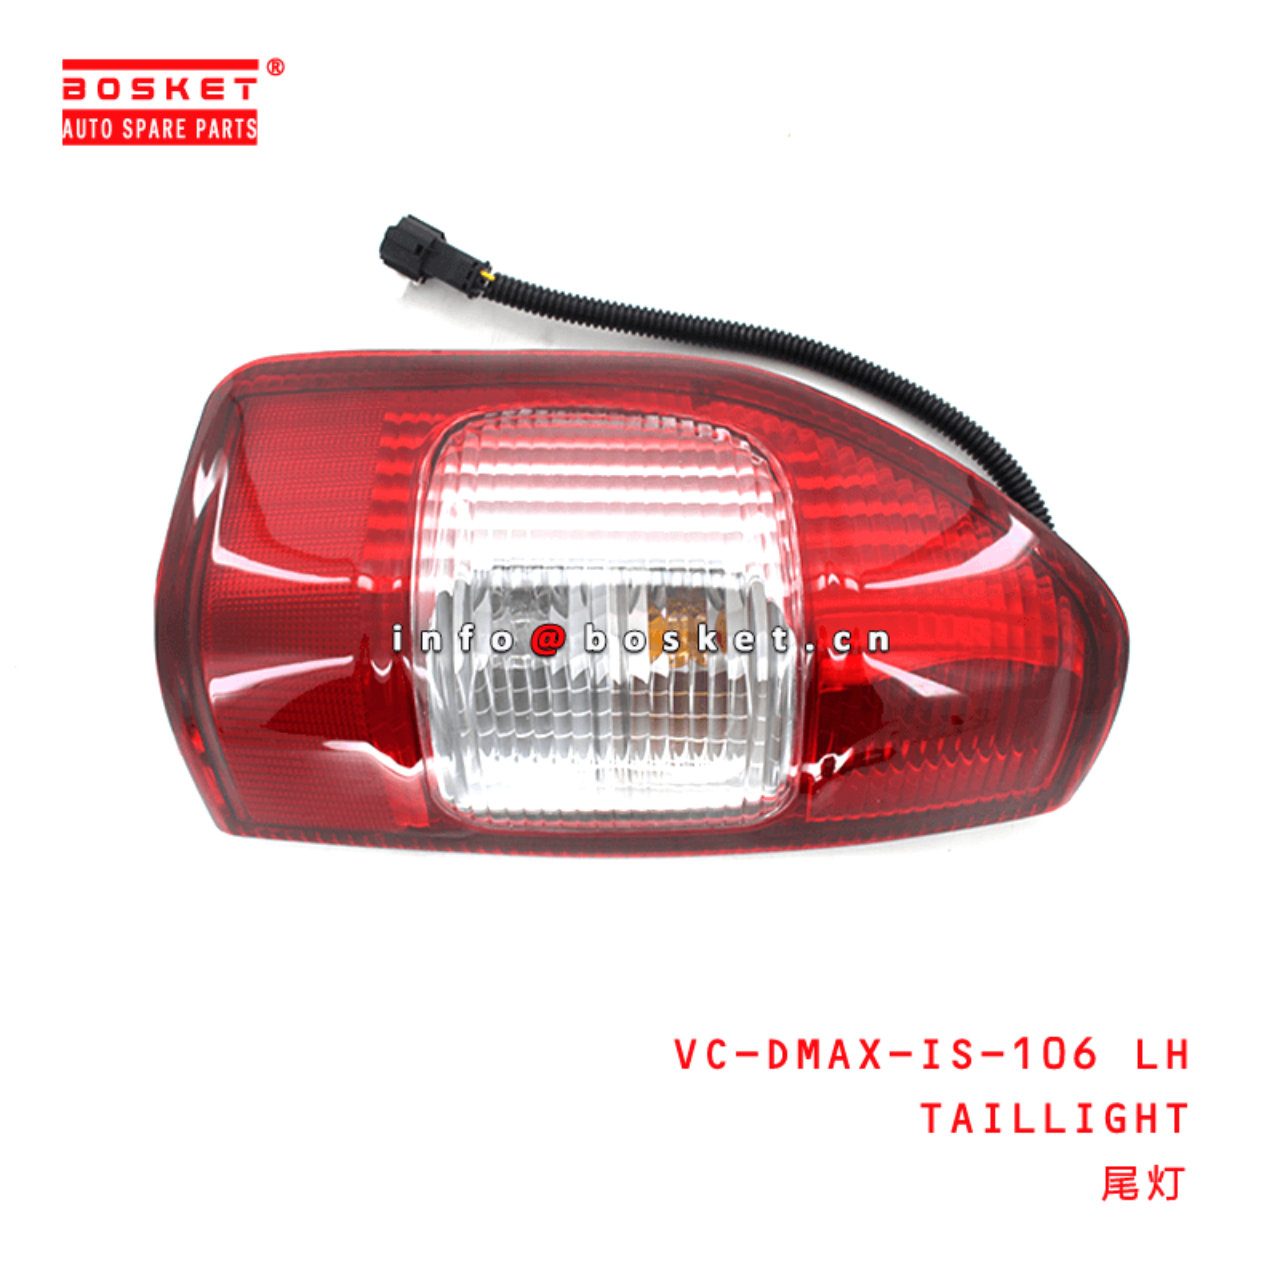 VC-DMAX-IS-106 LH Taillight Suitable for ISUZU D-MAX 02-05 06-08